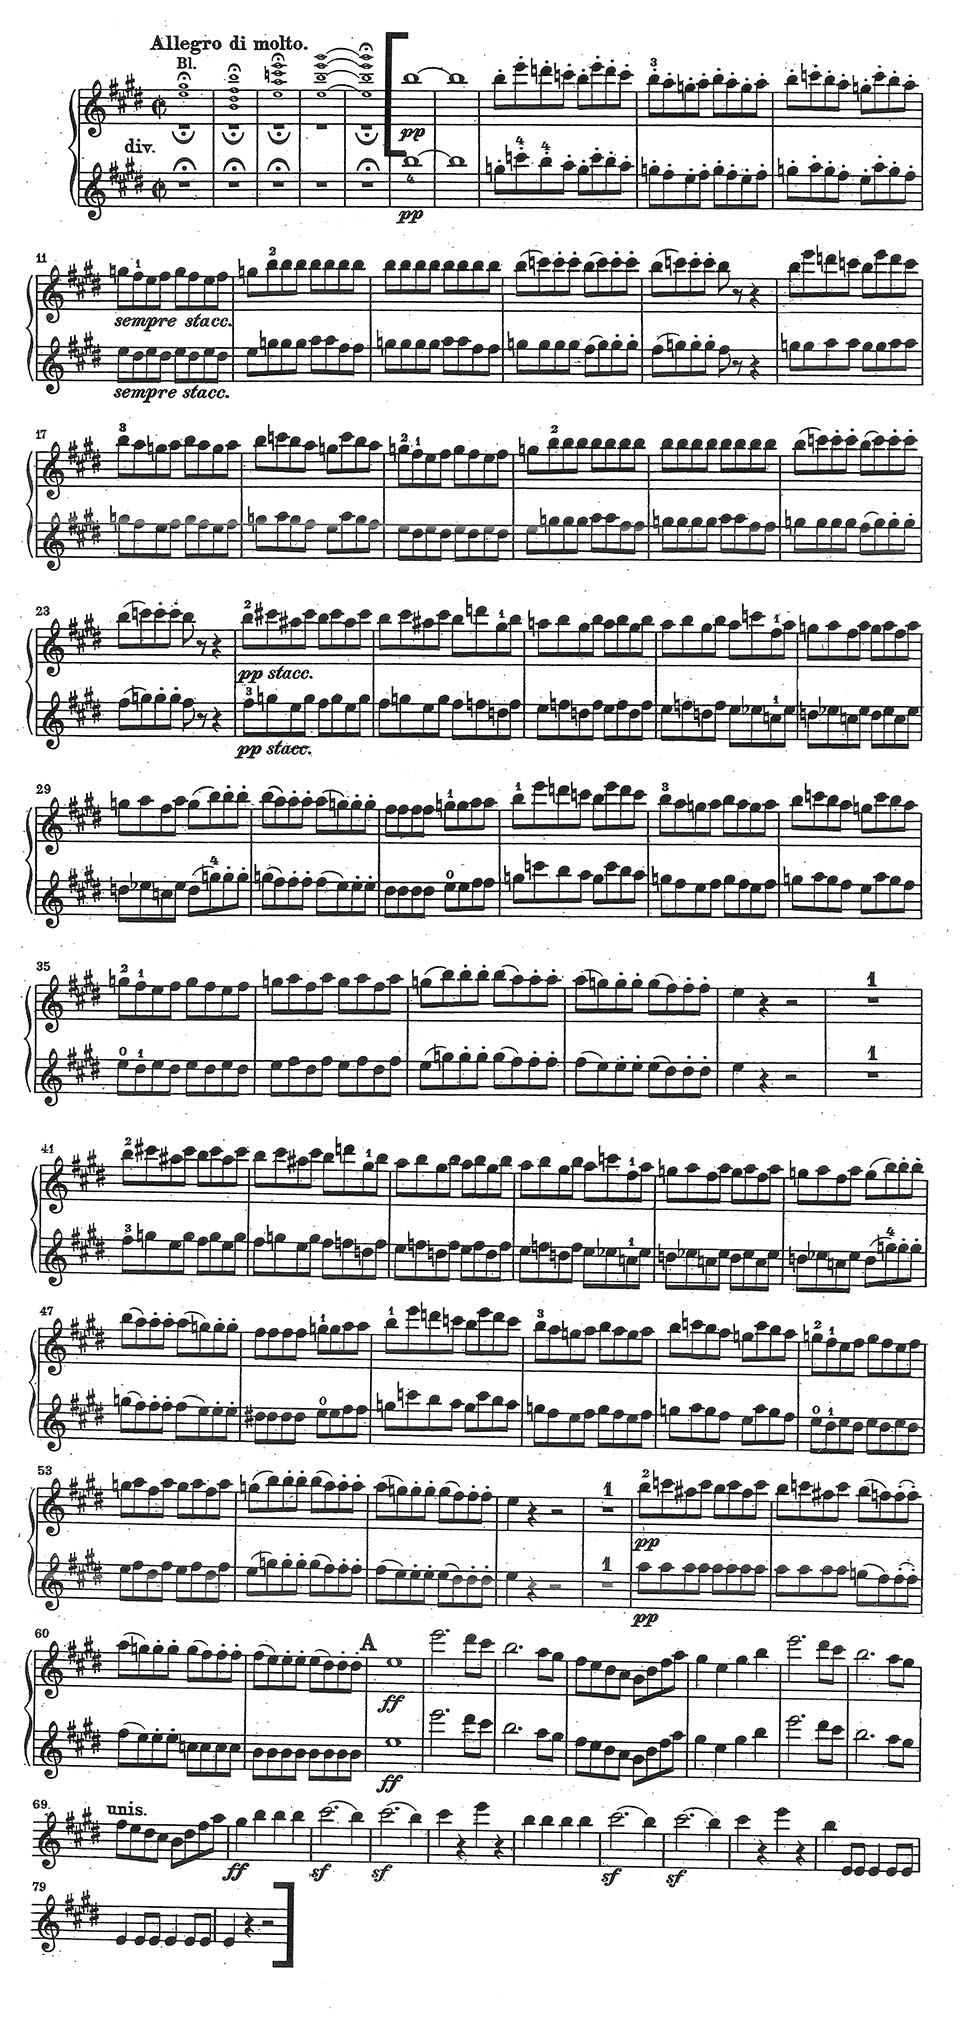 mendelssohn-midsummer-night-dream-overture-orchestra-audition-excerpt